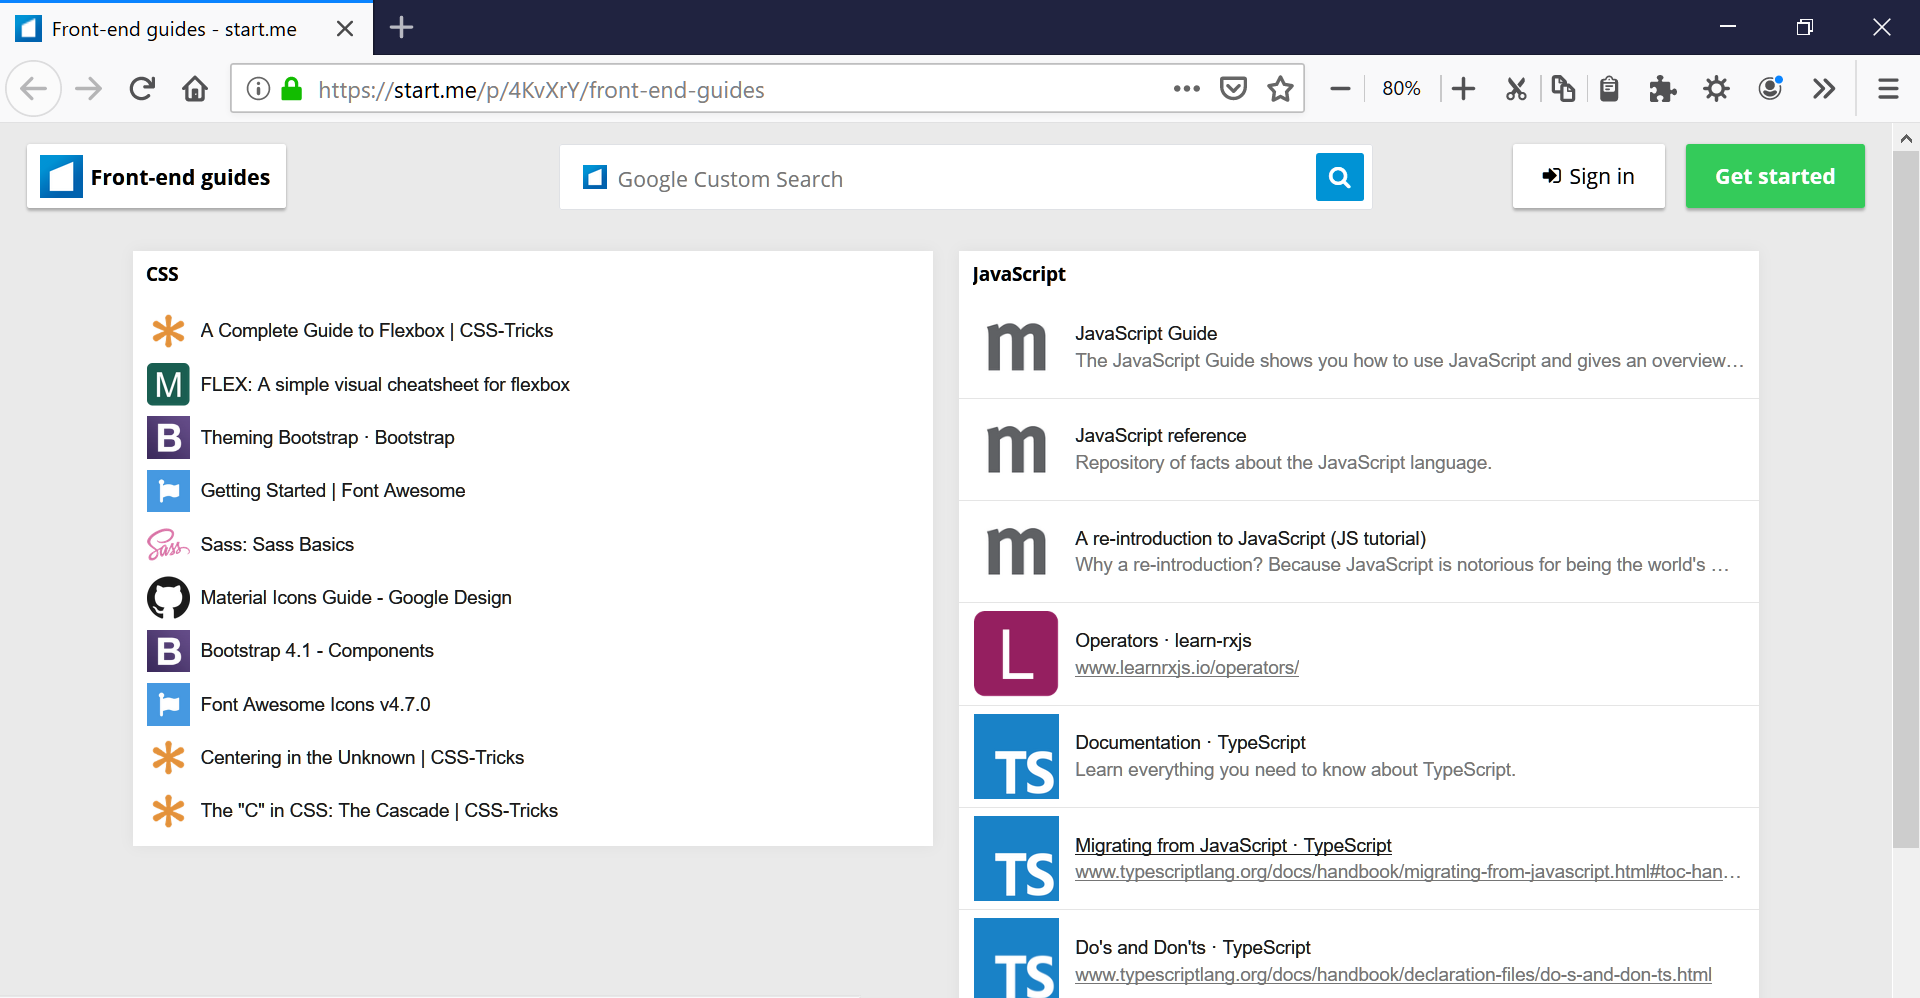 Dropmark Extension share a collection of bookmarks with your team, friends and